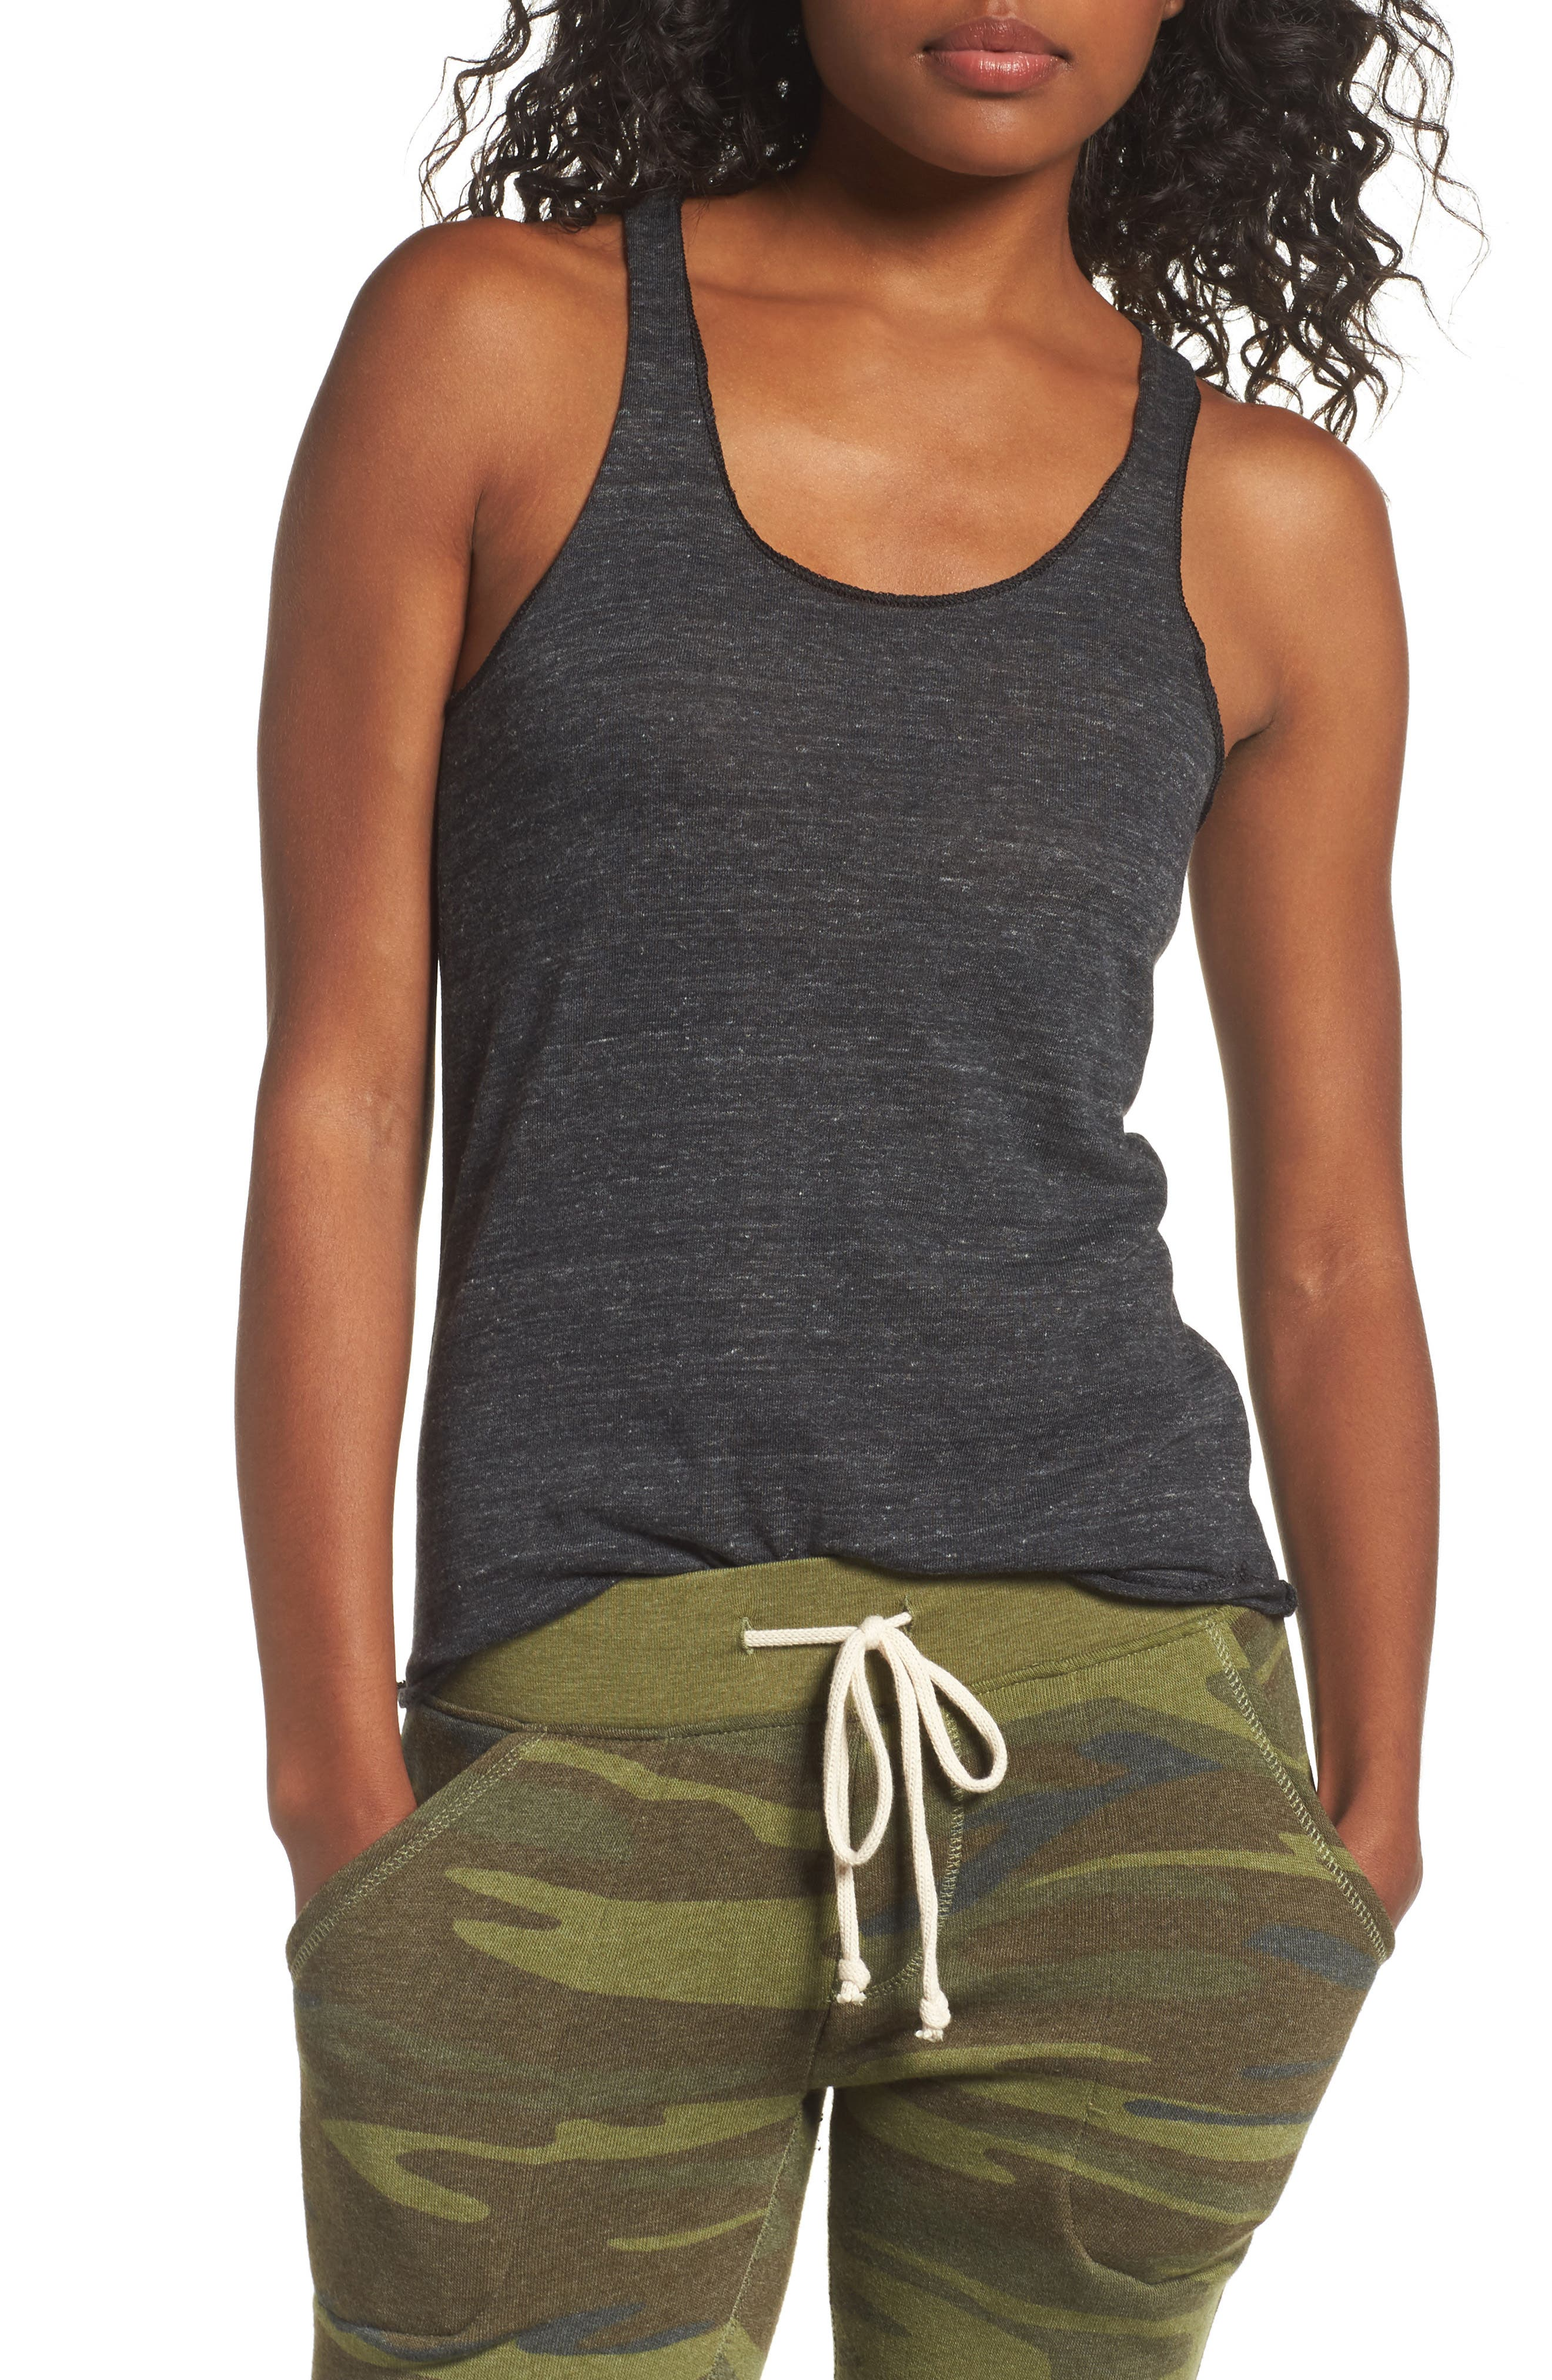 Meegs Racerback Tank,                             Main thumbnail 1, color,                             009